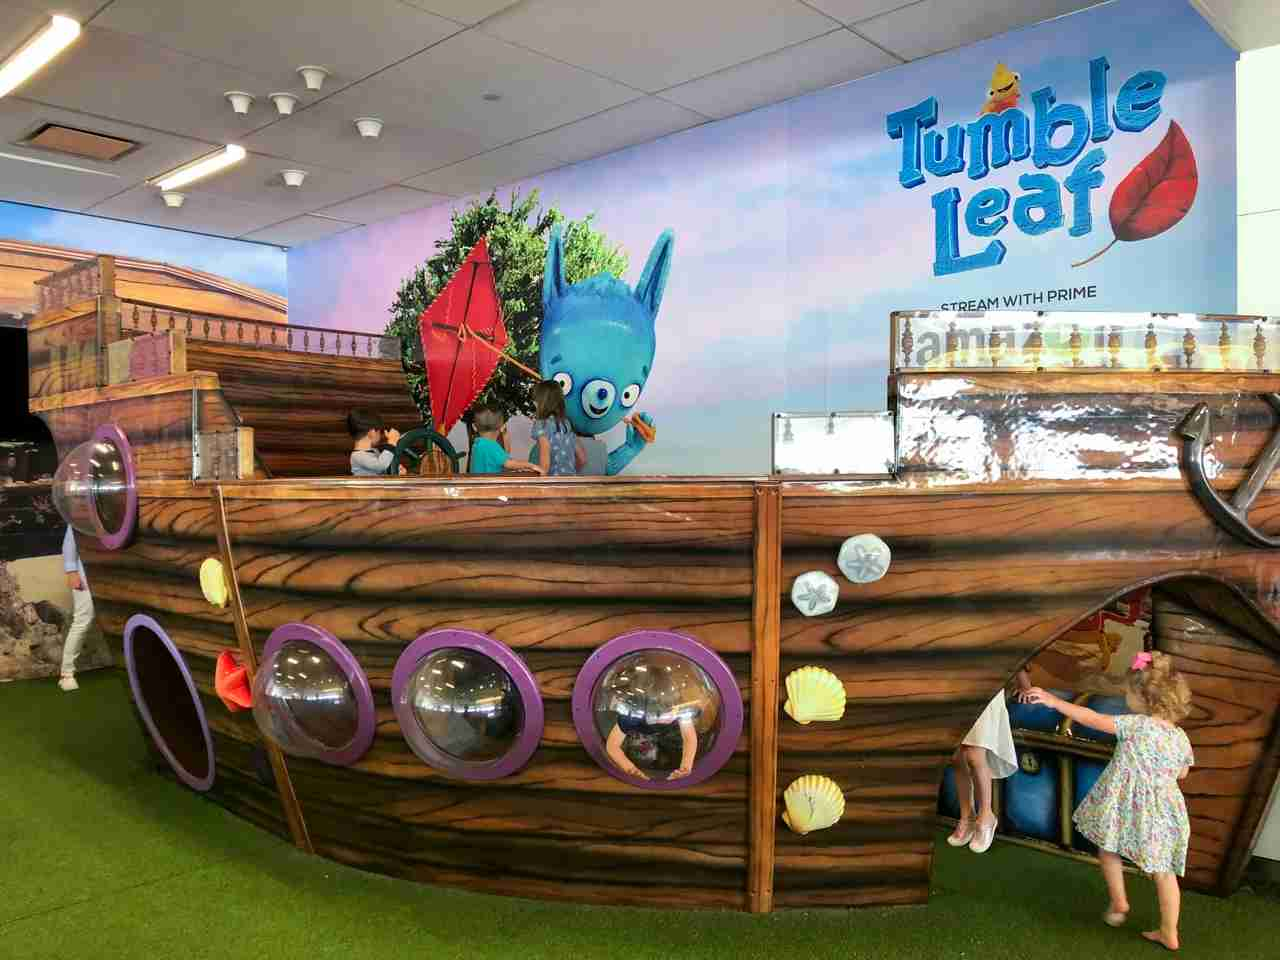 Utilize airport play areas when you can find them